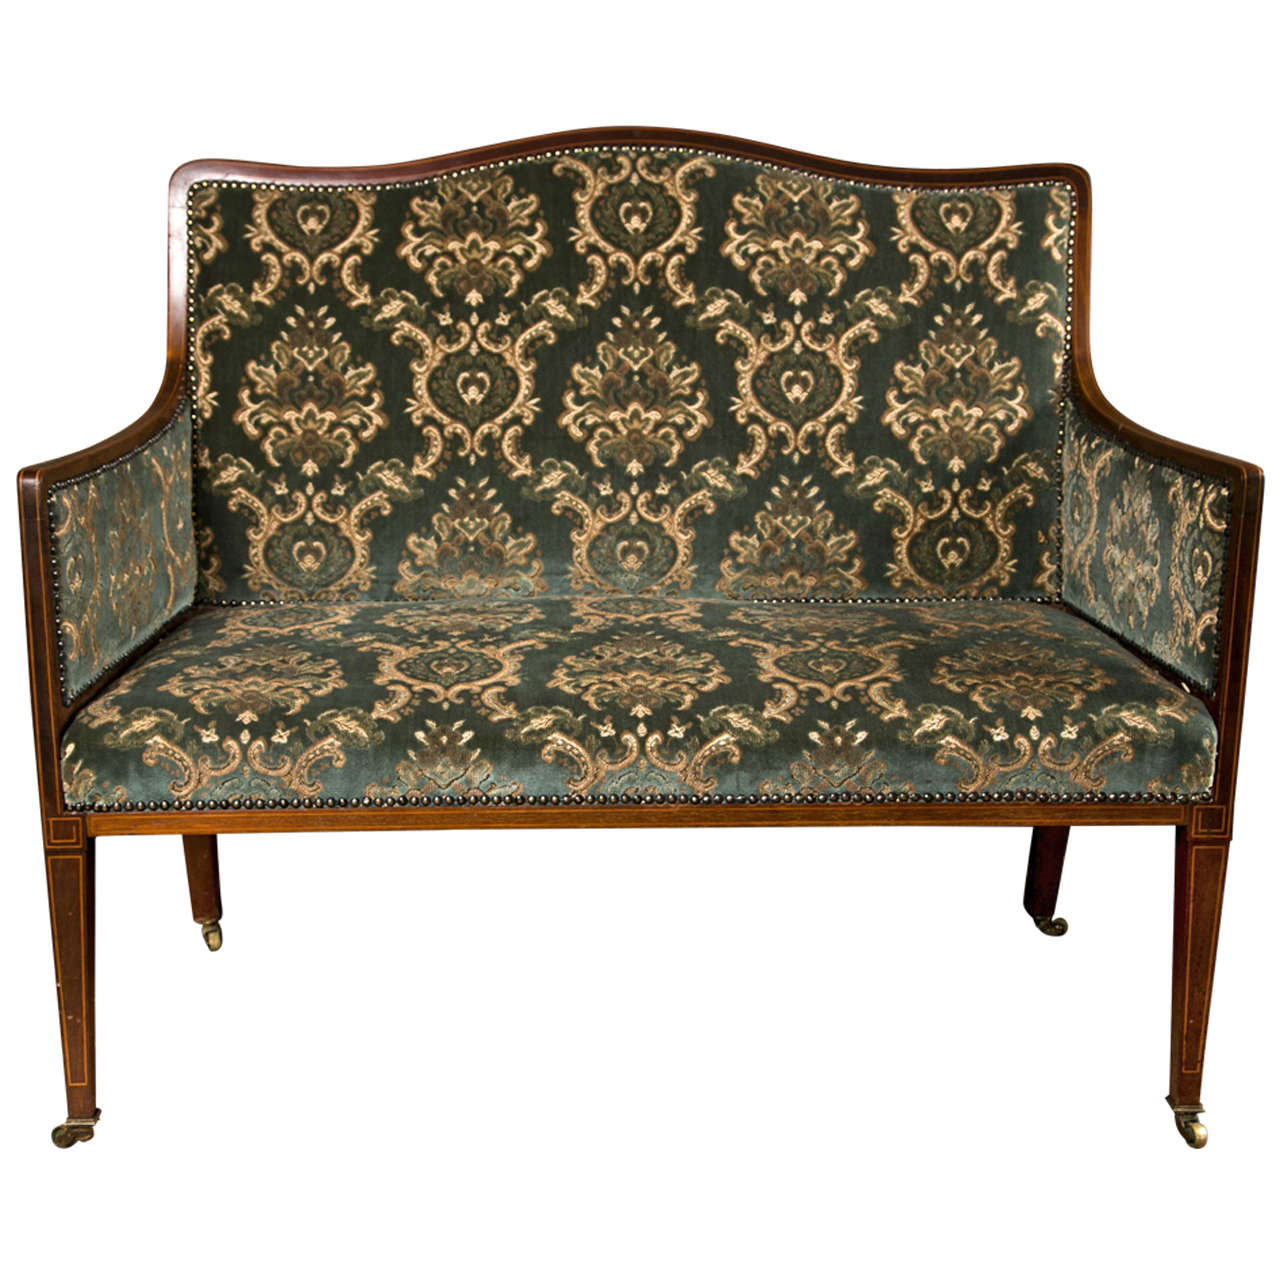 Edwardian inlaid mahogany settee for sale at 1stdibs for Settees for sale